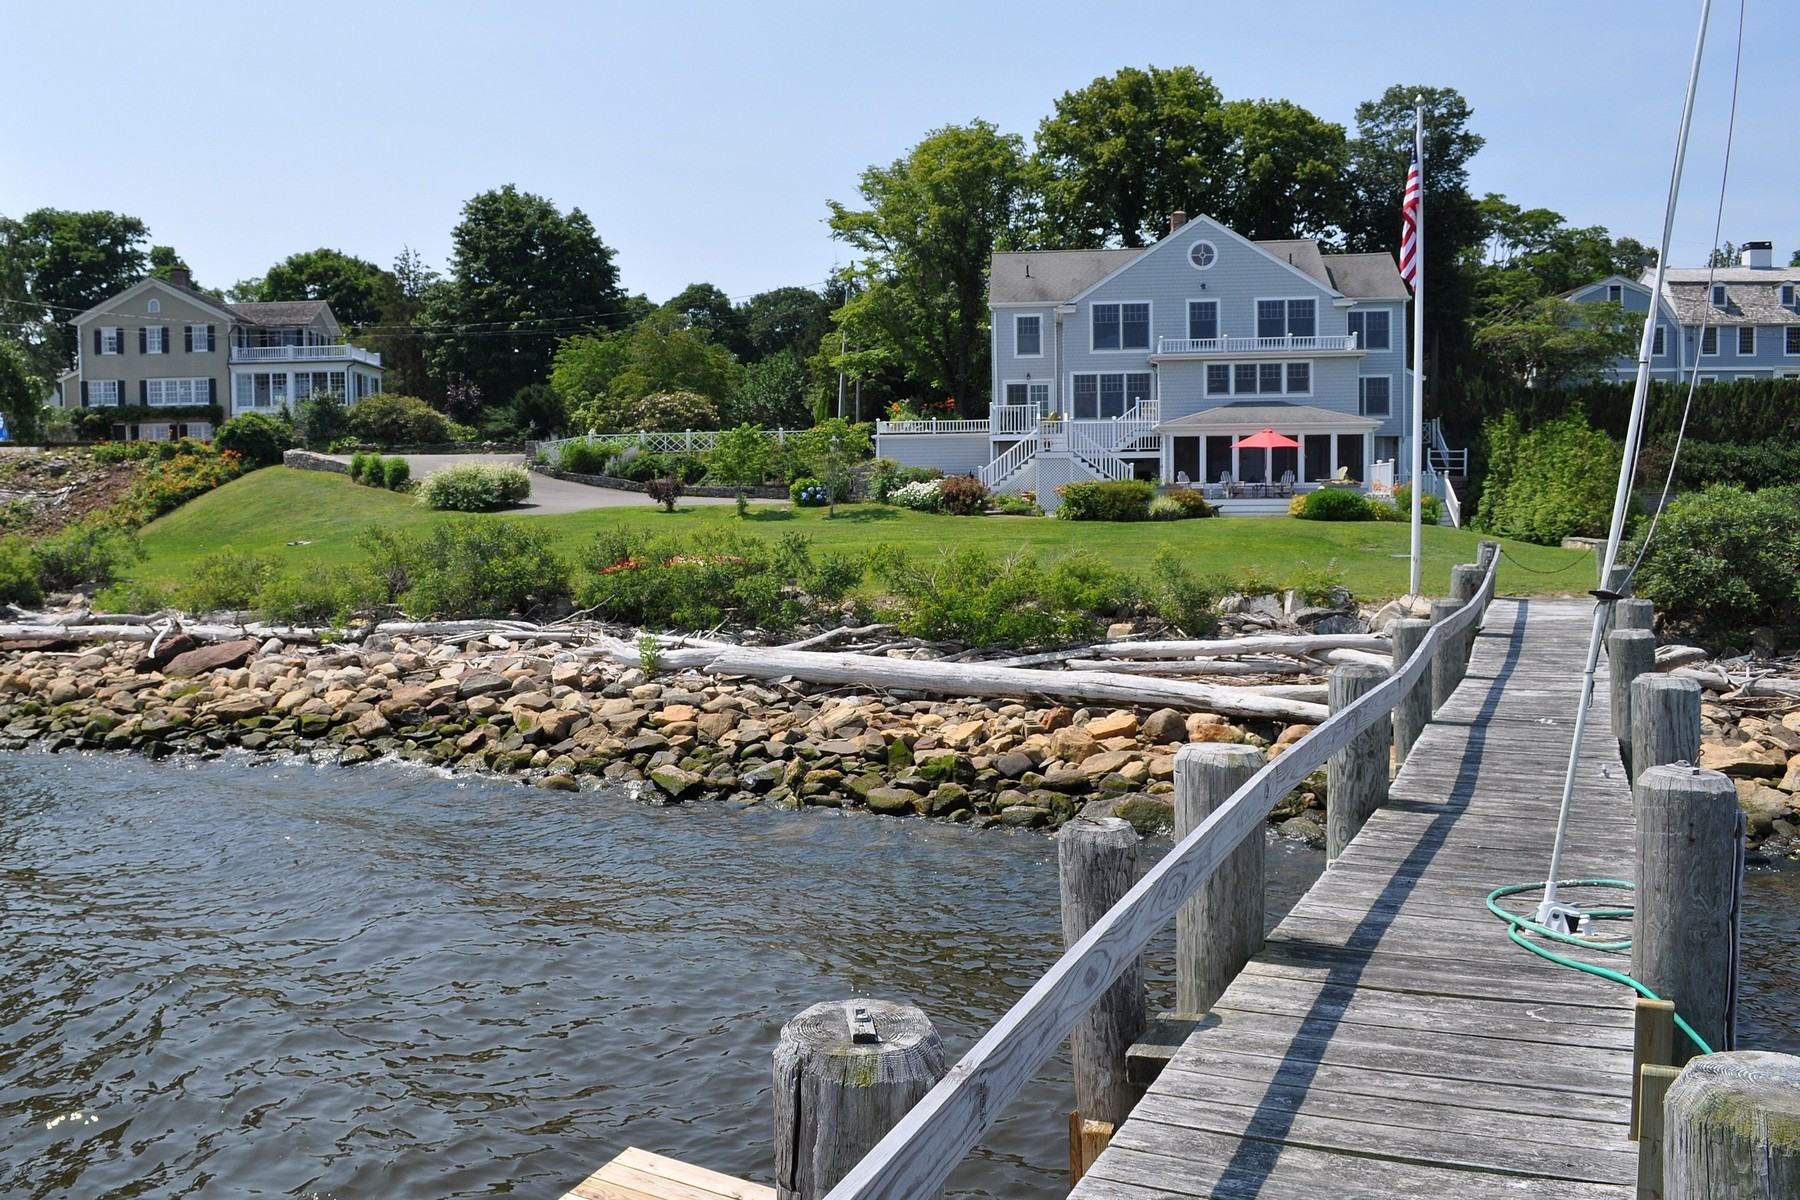 Moradia para Venda às Secluded Harbor of North Cove 201 North Cove Rd Old Saybrook, Connecticut, 06475 Estados Unidos